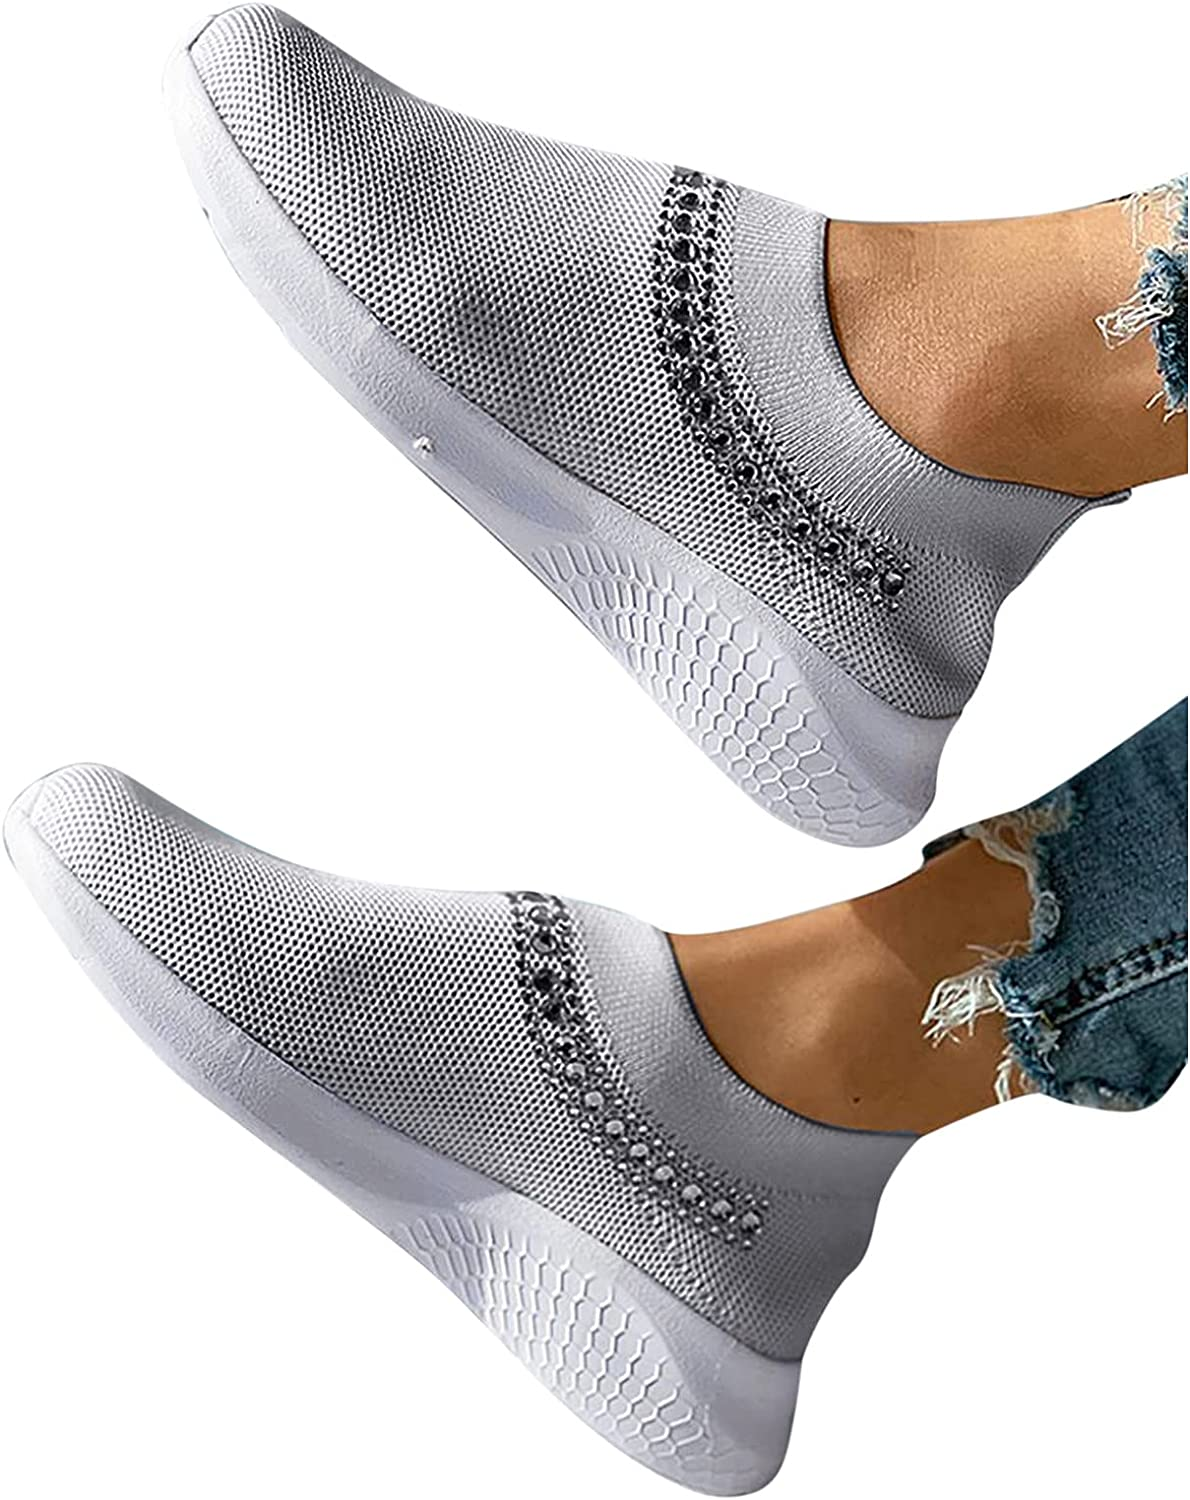 AODONG Sneakers for Women Walking Shoes Crystal Slip On Mesh Breathable Wedges Running Sports Shoes Fashion Round Toe Shoes